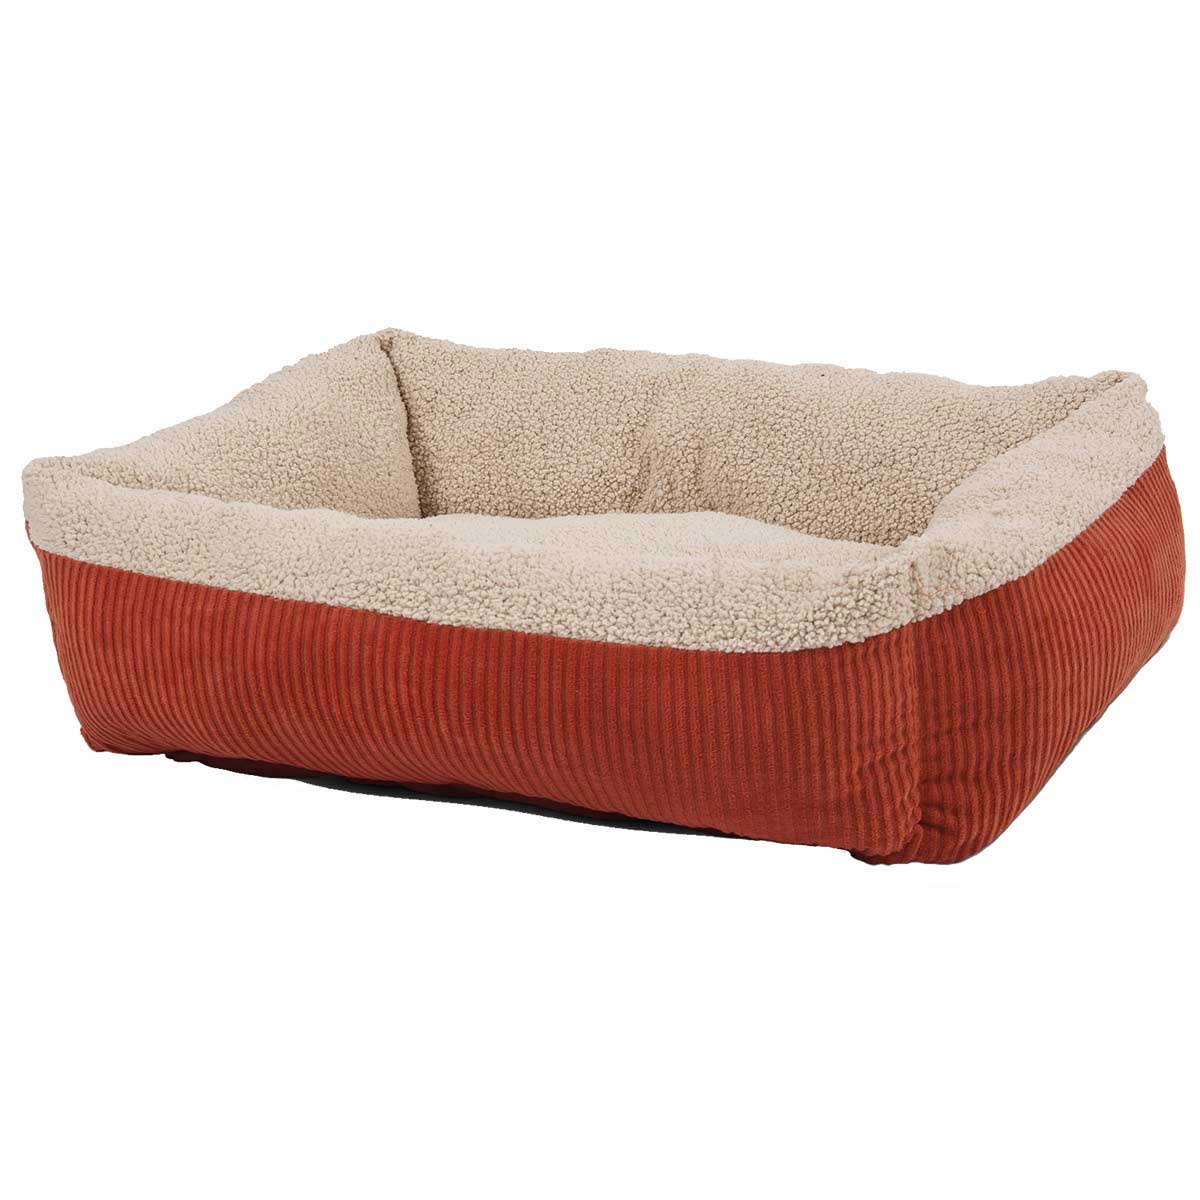 Aspen Pet Self-Warming Bed Rectangular Lounger - 35 inches by 27 inches